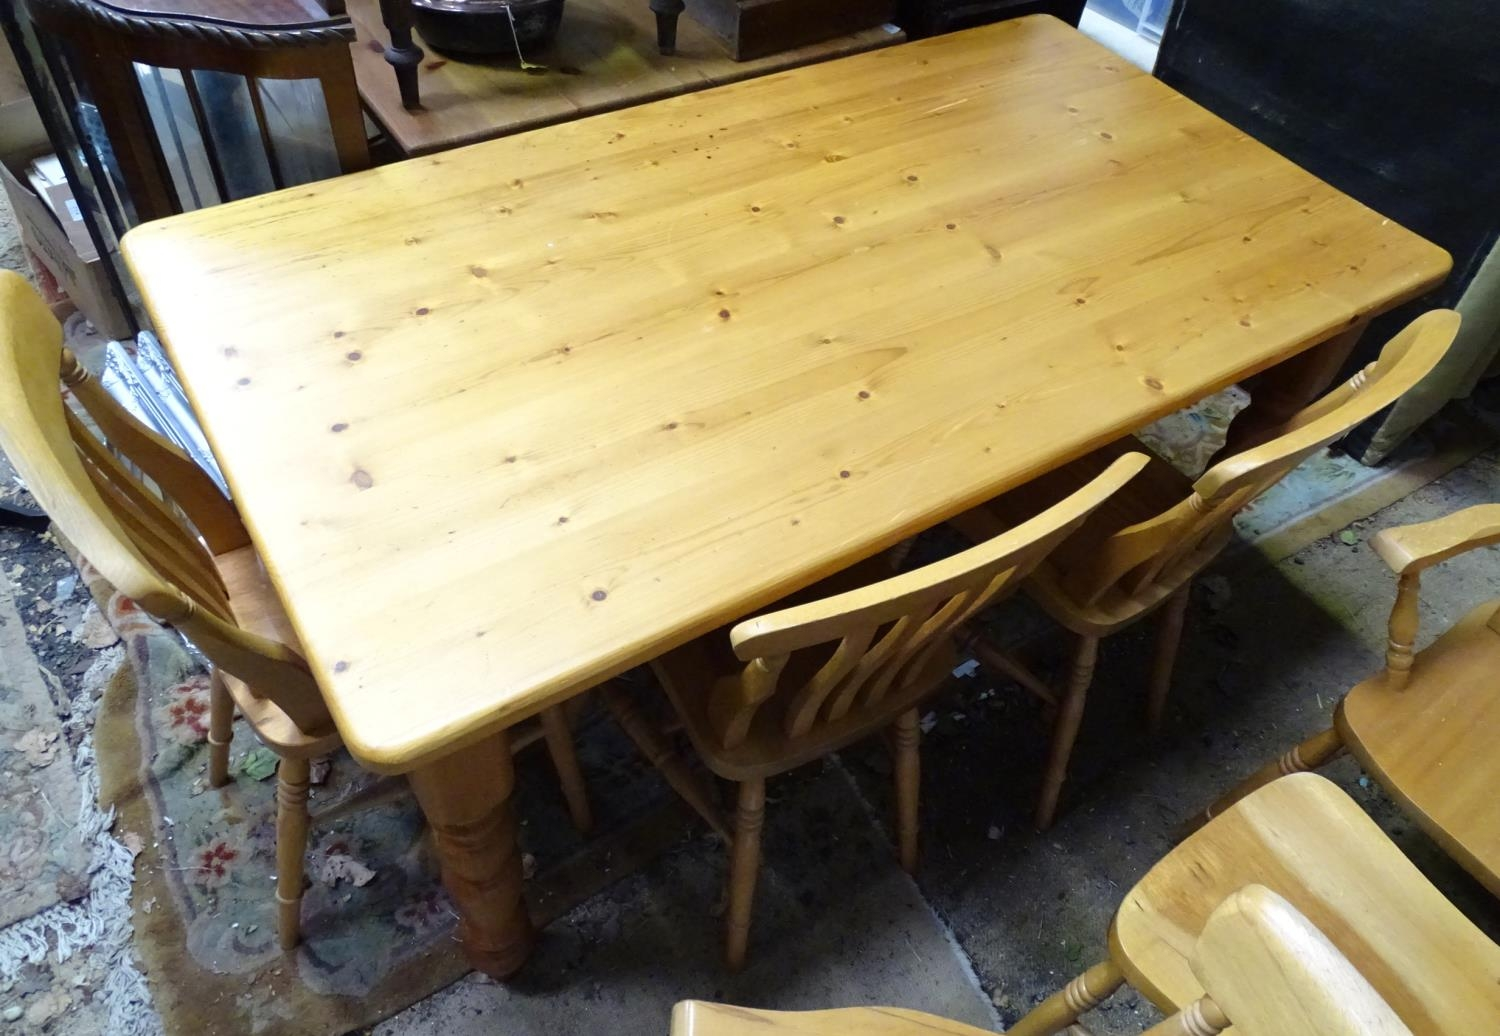 A pine dining table with 6 chairs Please Note - we do not make reference to the condition of lots - Image 4 of 5